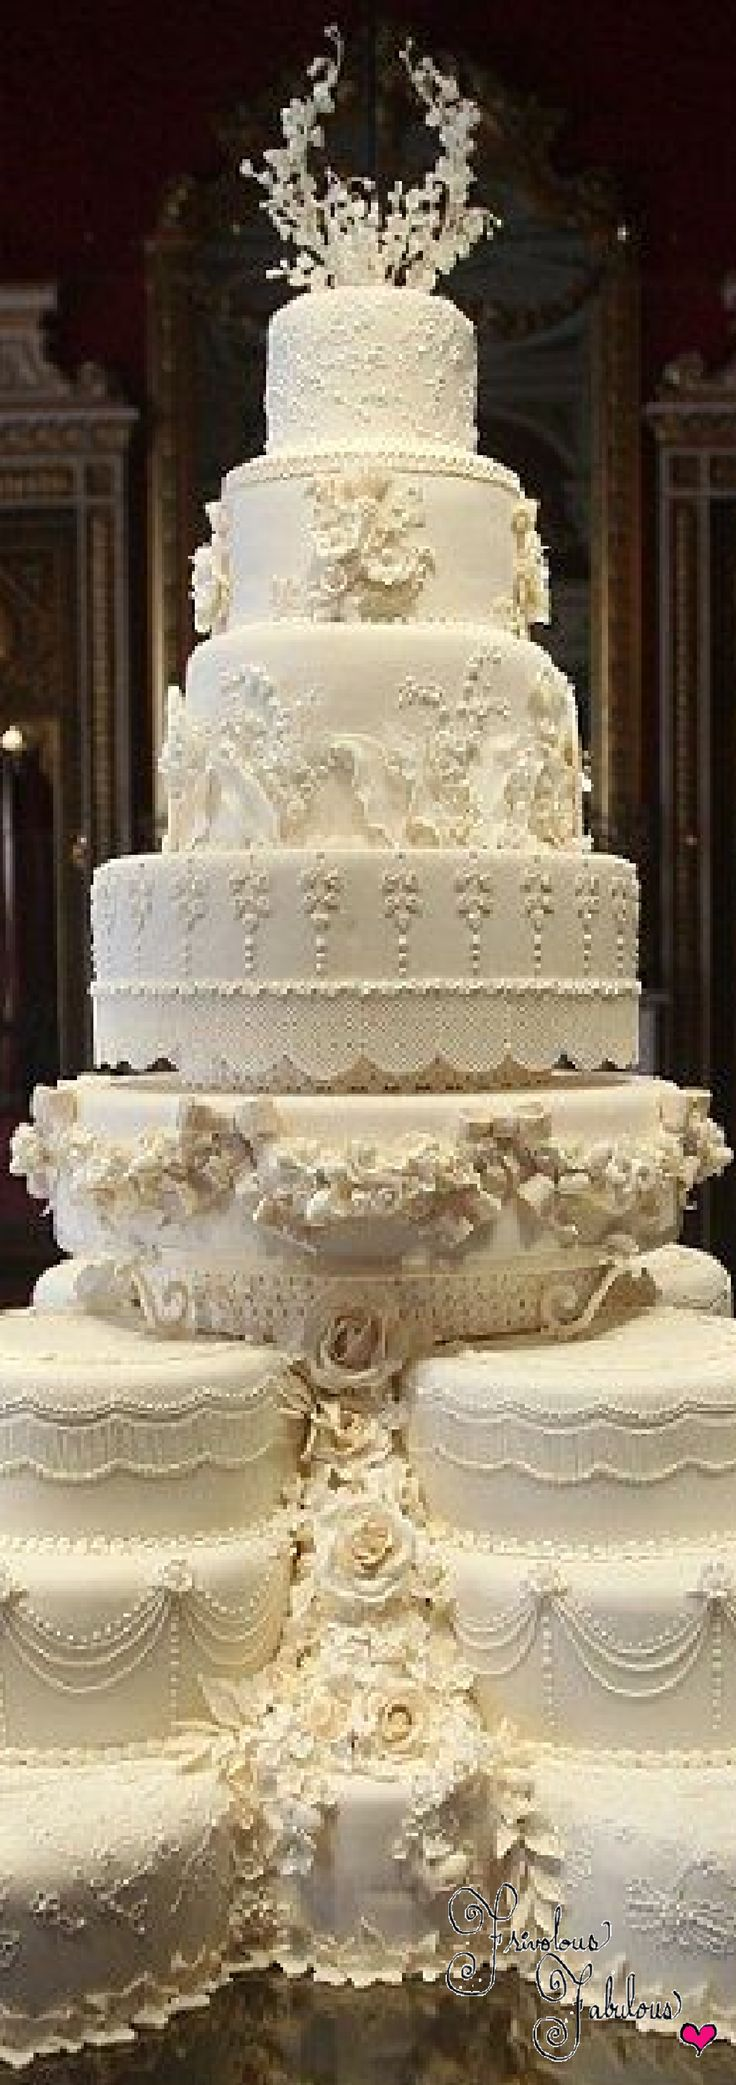 images of royal wedding cakes 1049 best cakes images on 16352